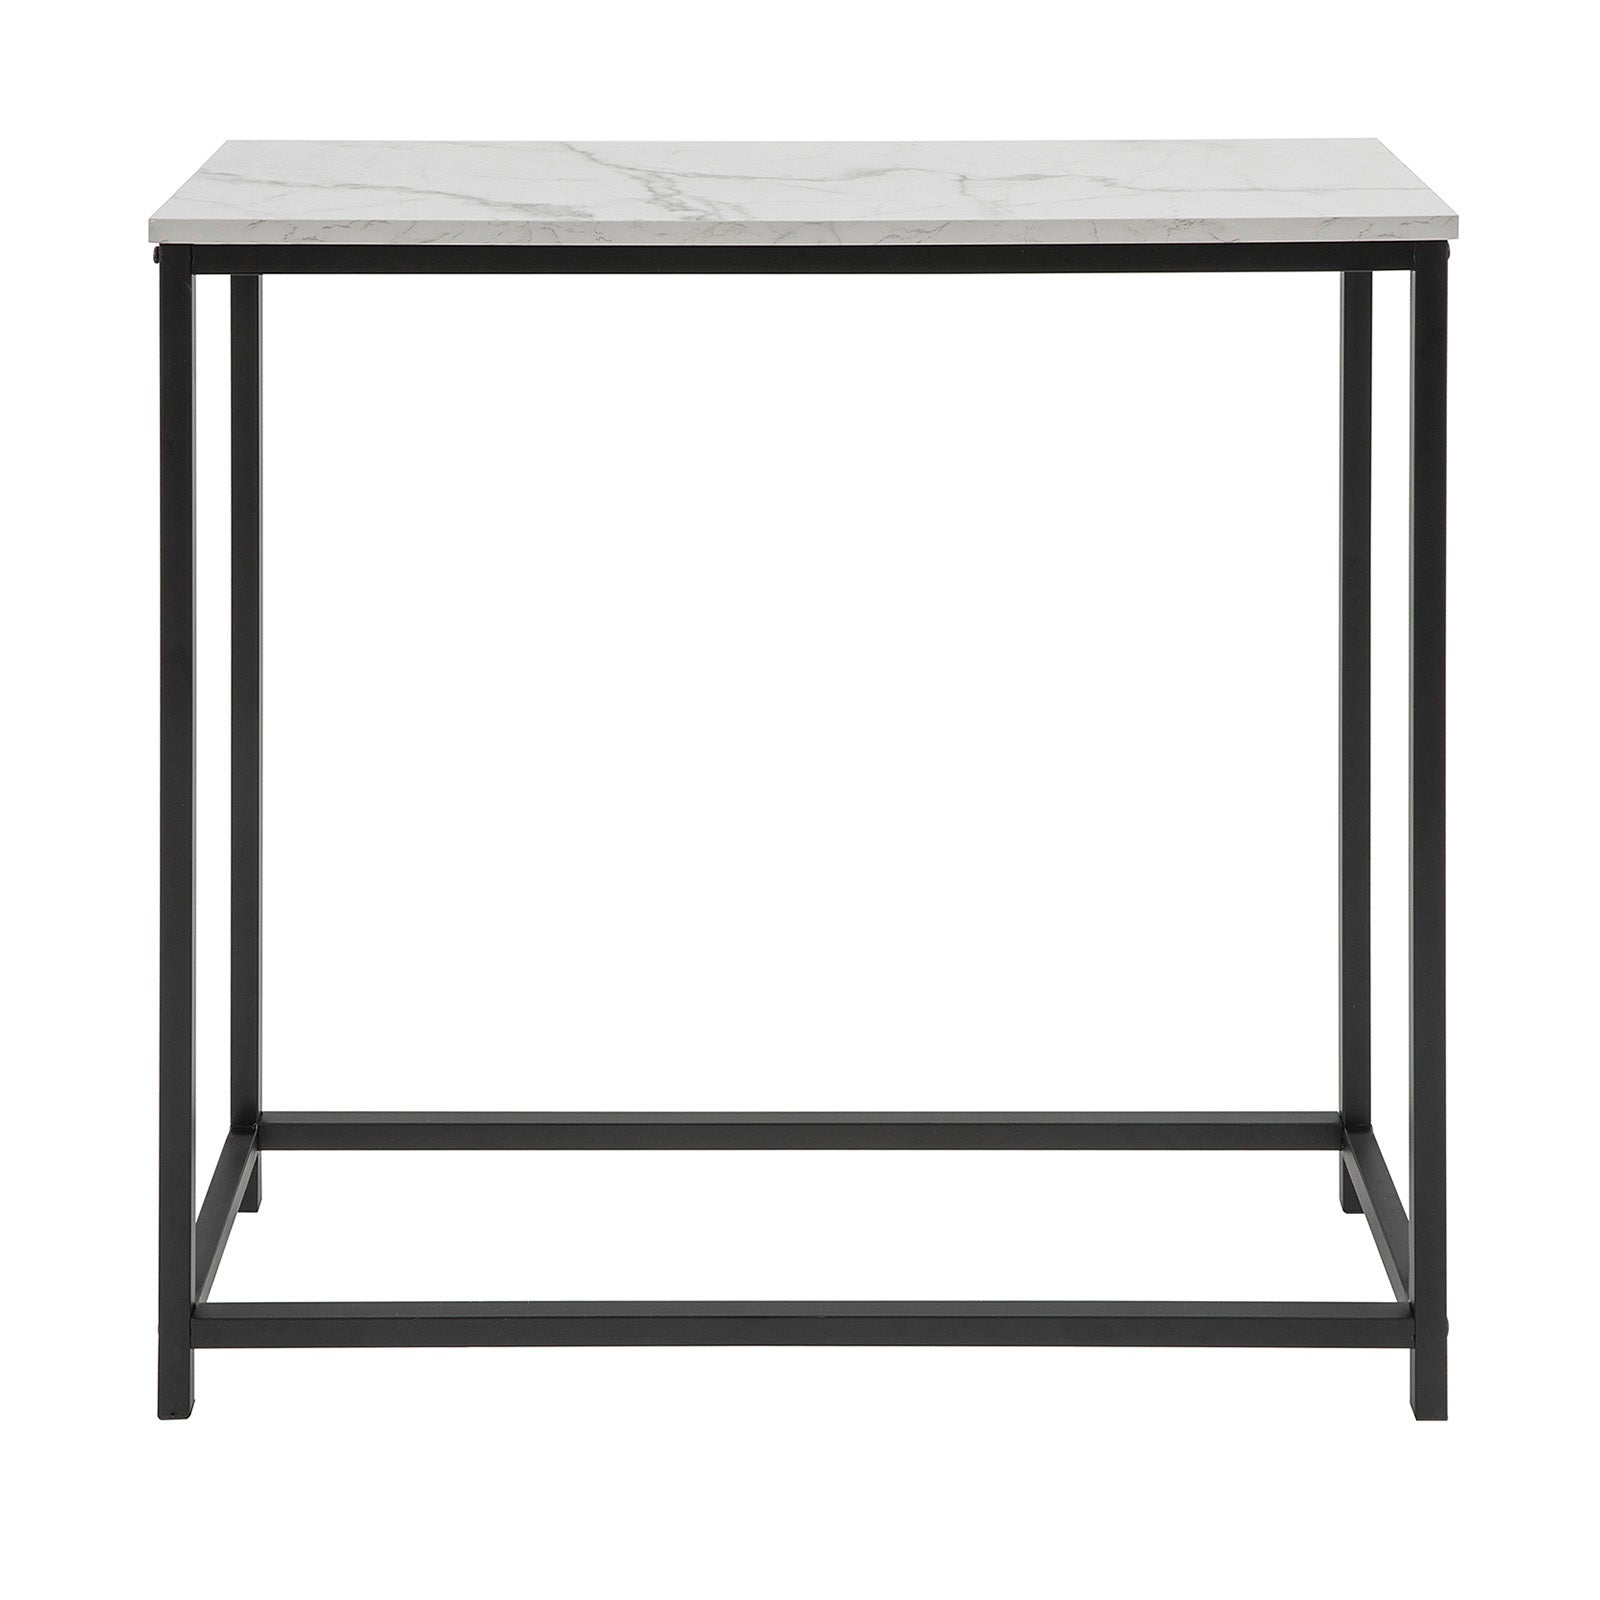 SoBuy Console table Entrance Modern Aspect Marble Vintage Style L80 * P30 * 75cm FSB29-SCH